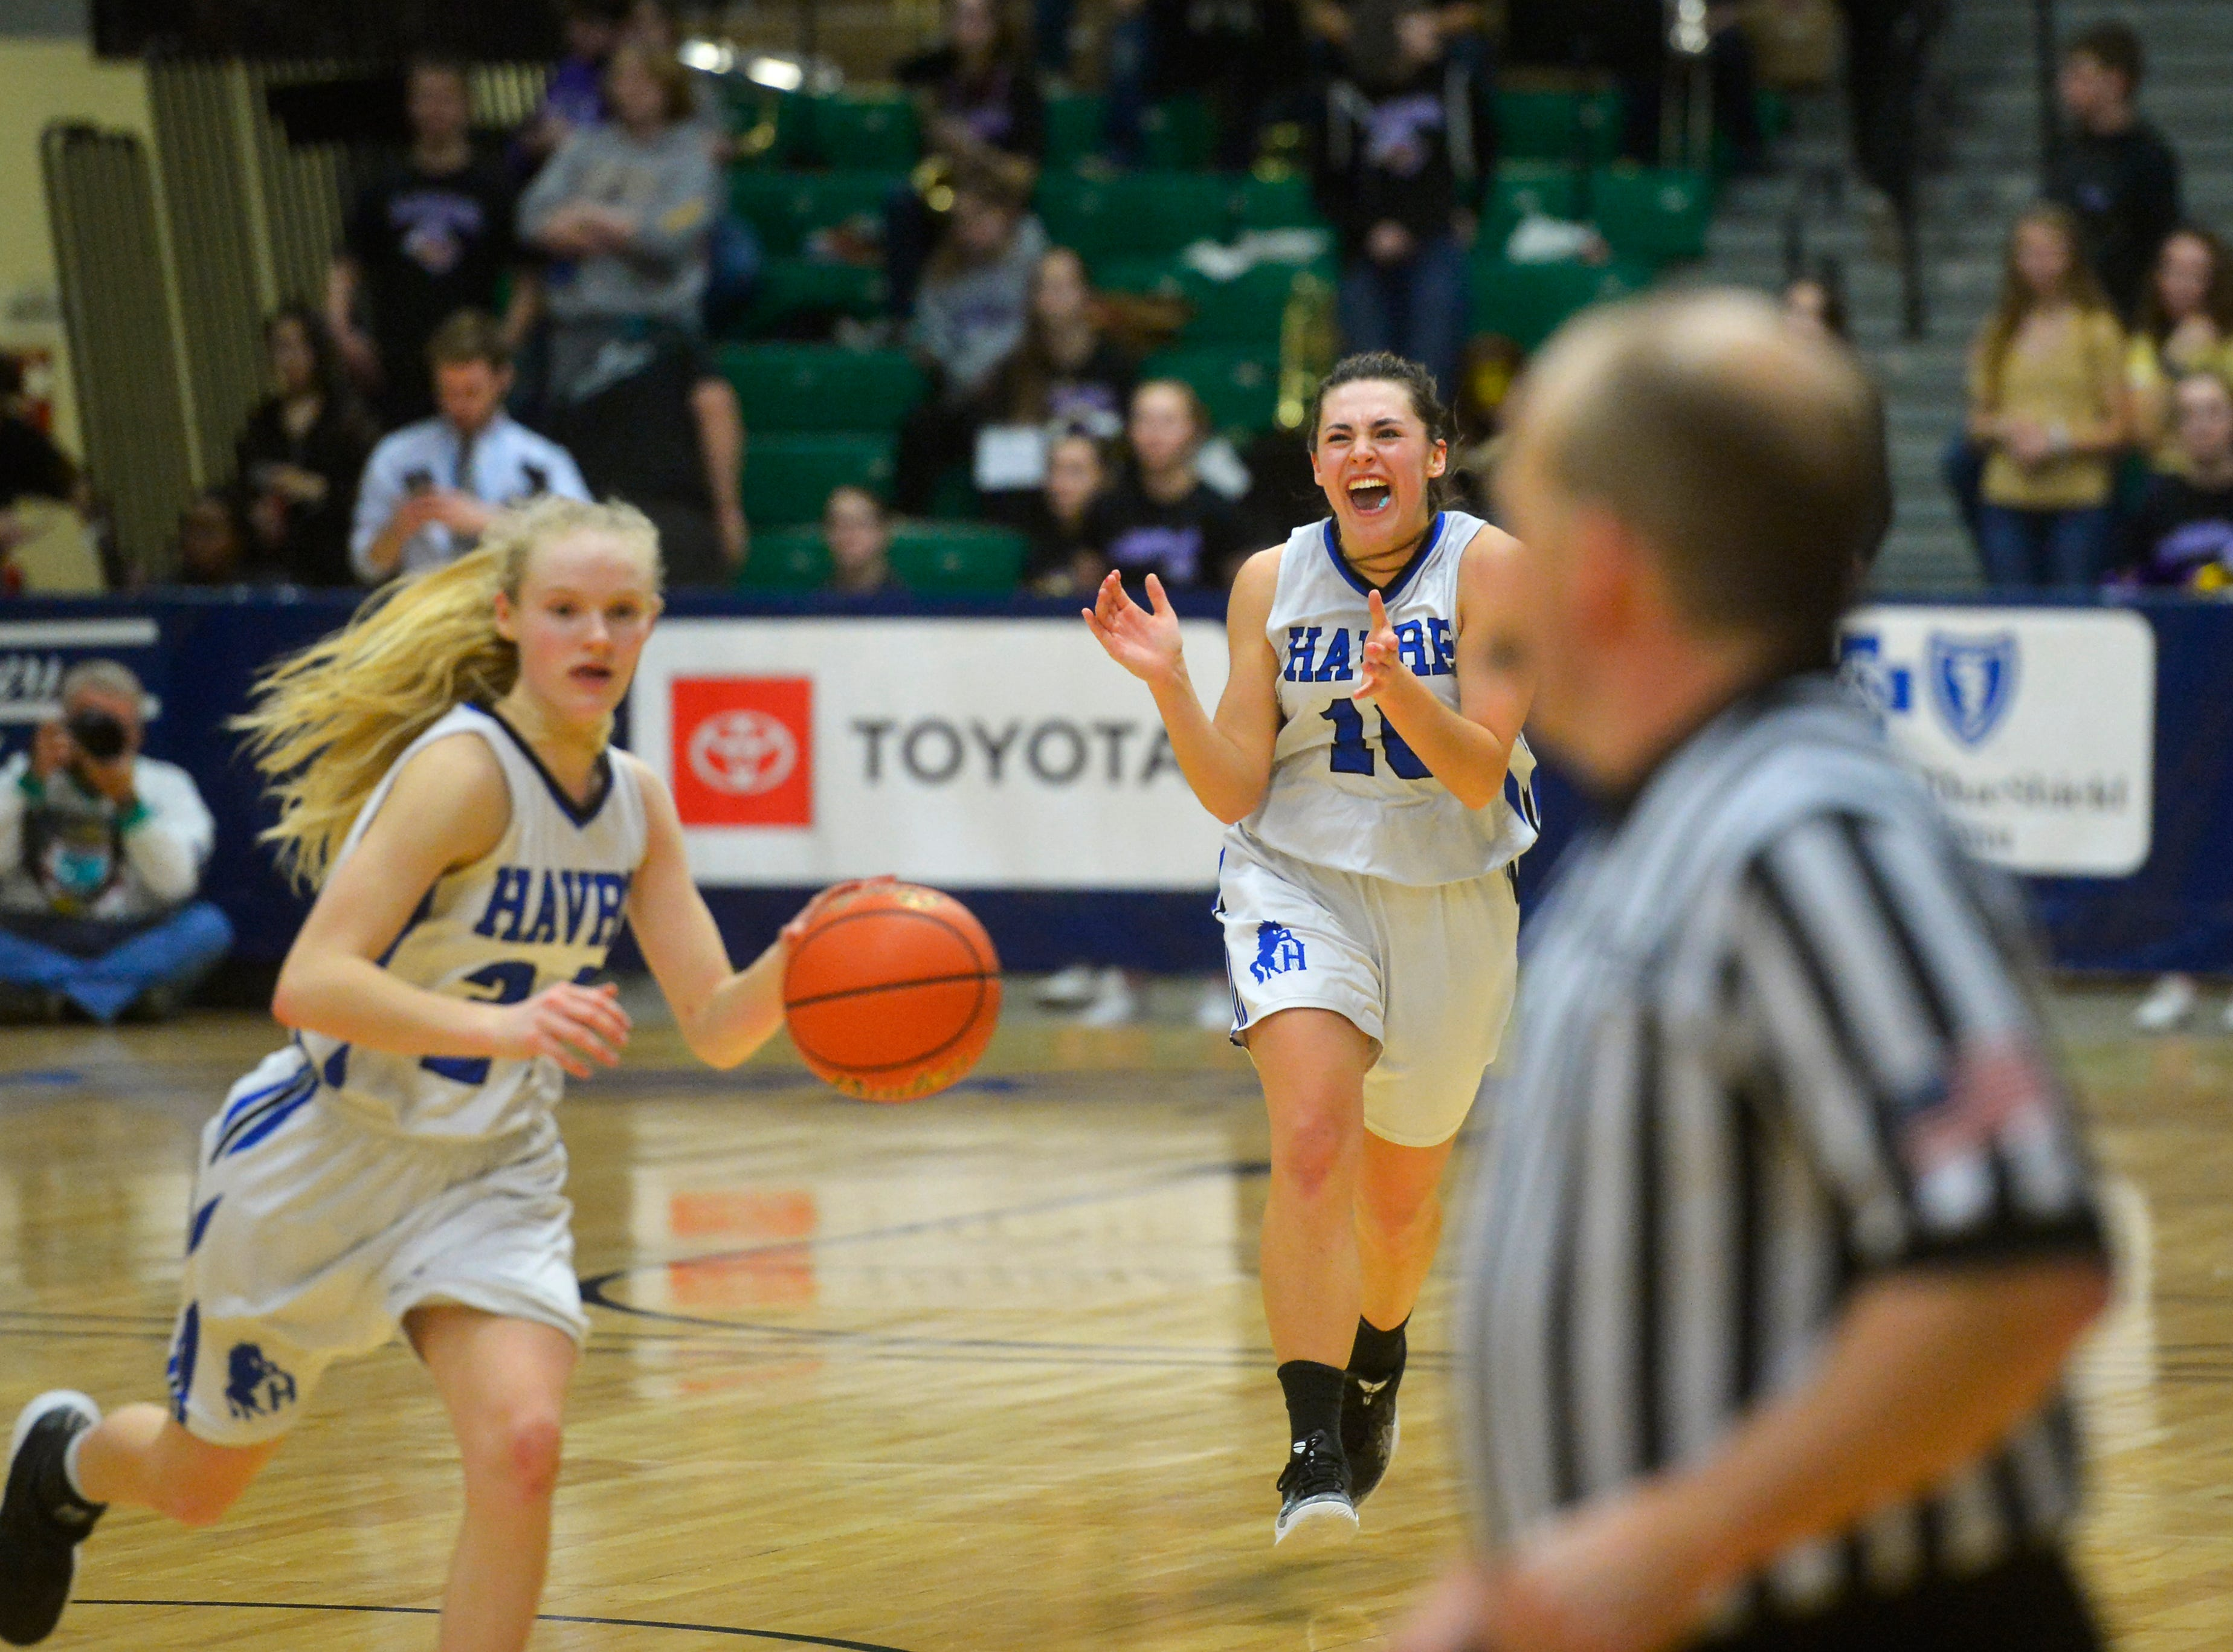 Havre's Kyndall Keller celebrates as the final seconds tick off the clock in their semifinal victory over Laurel at the State Class A Basketball Tournament in the Four Seasons Arena, Friday.